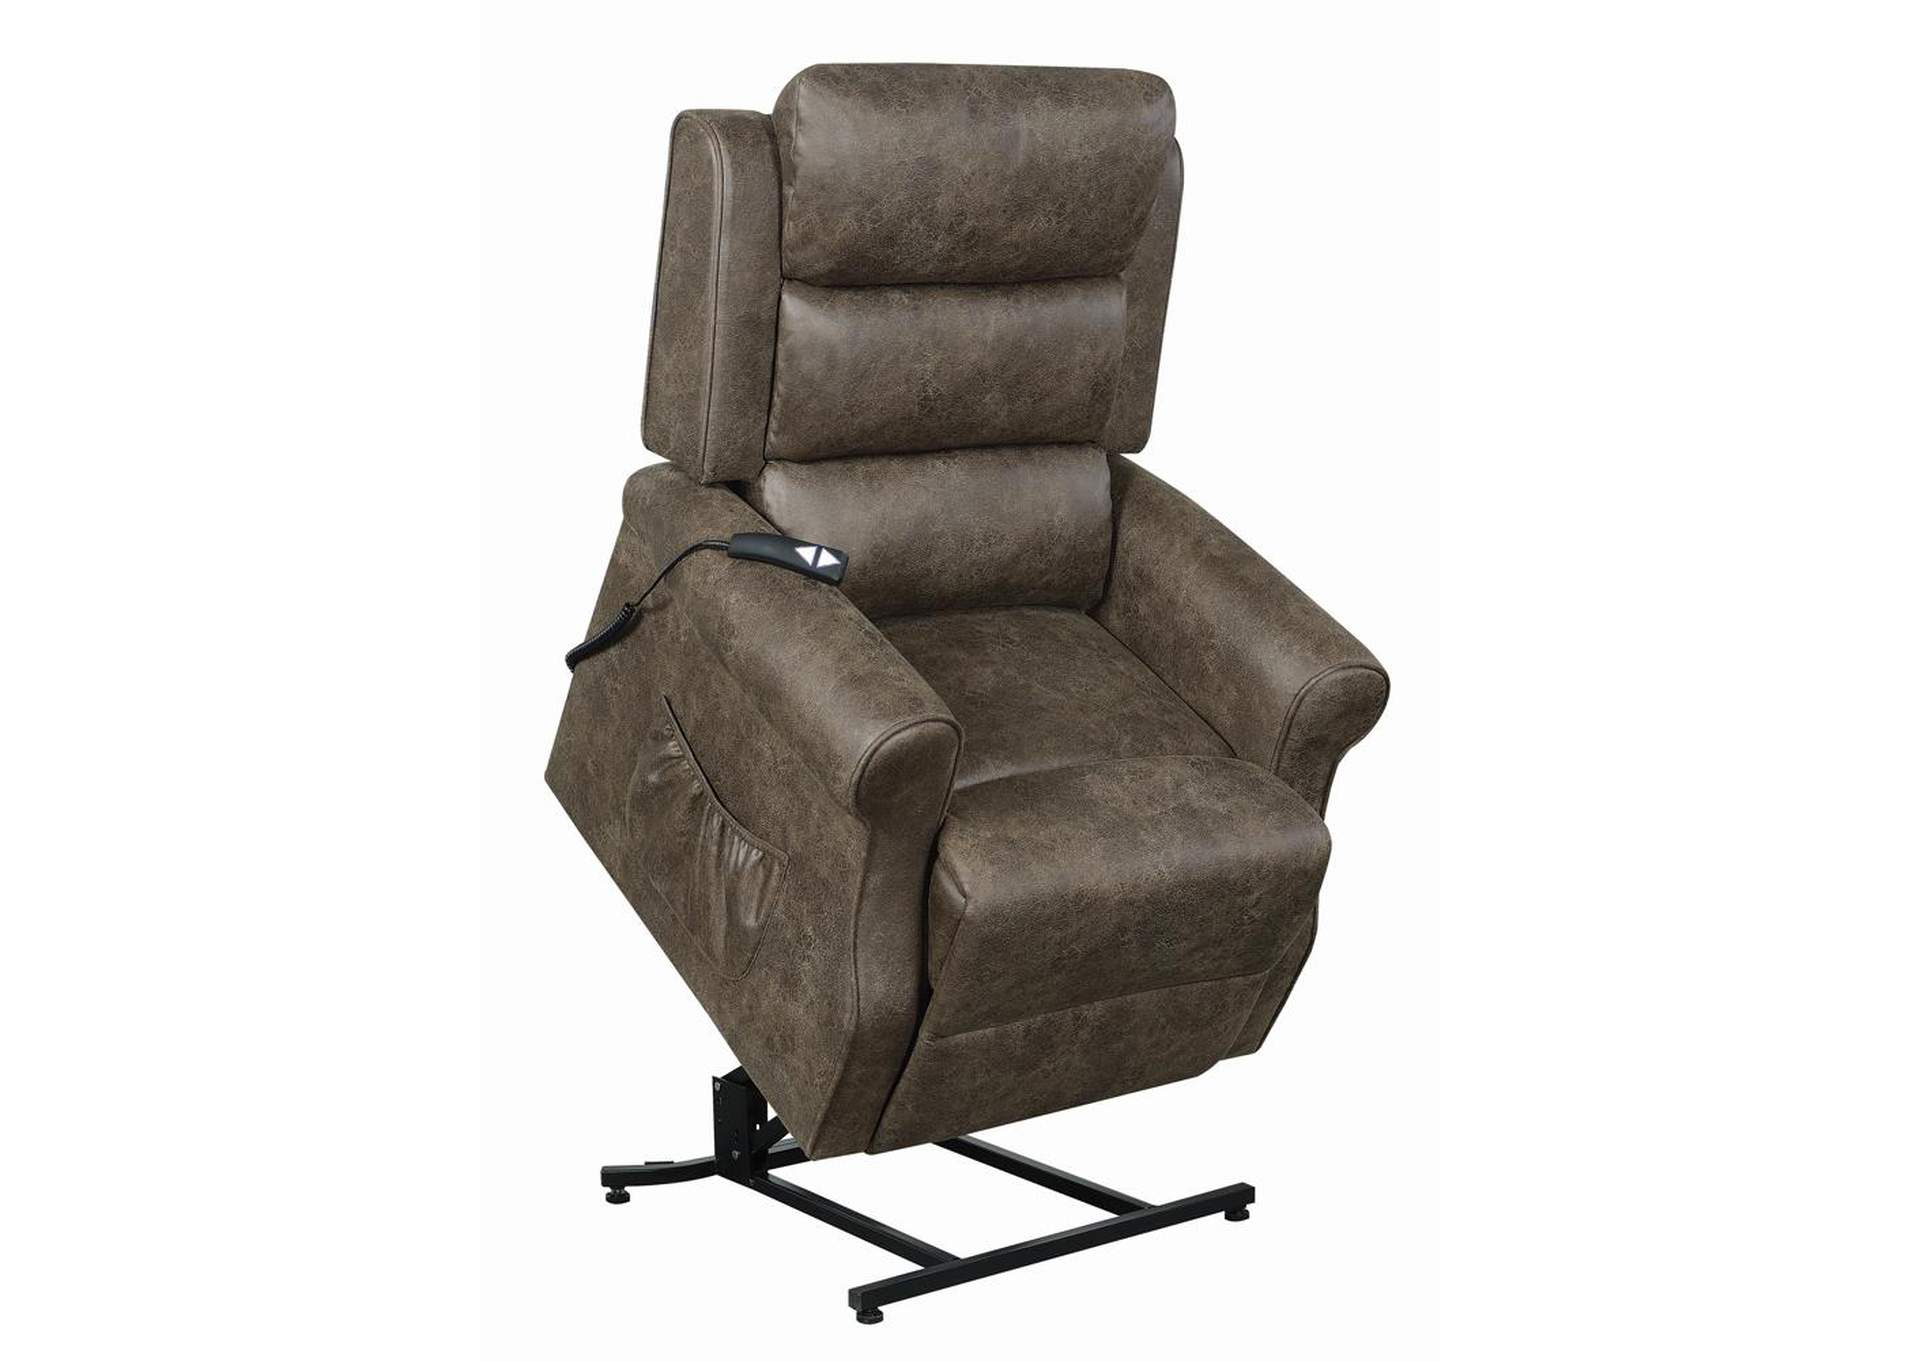 Brown Power Lift Recliner,Coaster Furniture